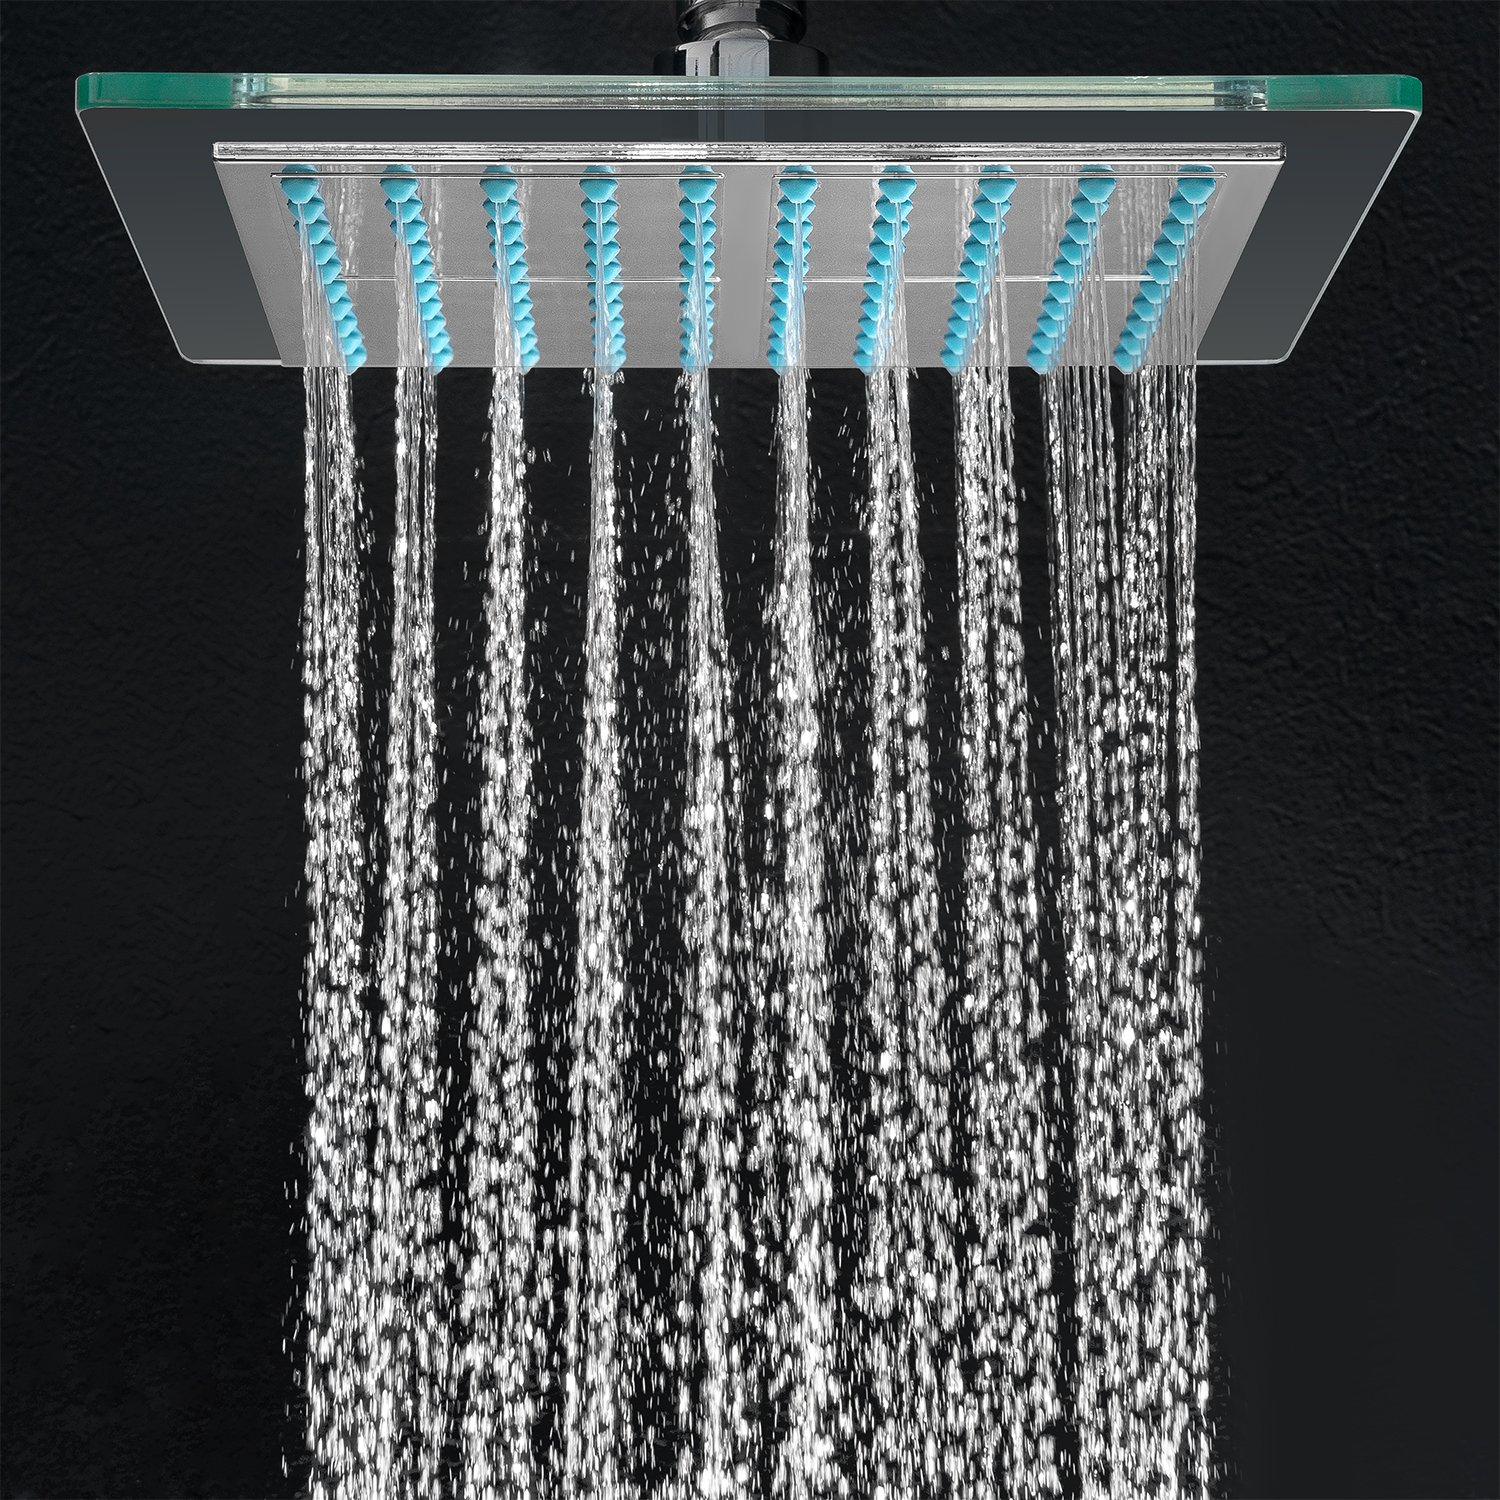 AKDY AZ-6021 Bathroom Chrome Shower Head, 8-inch